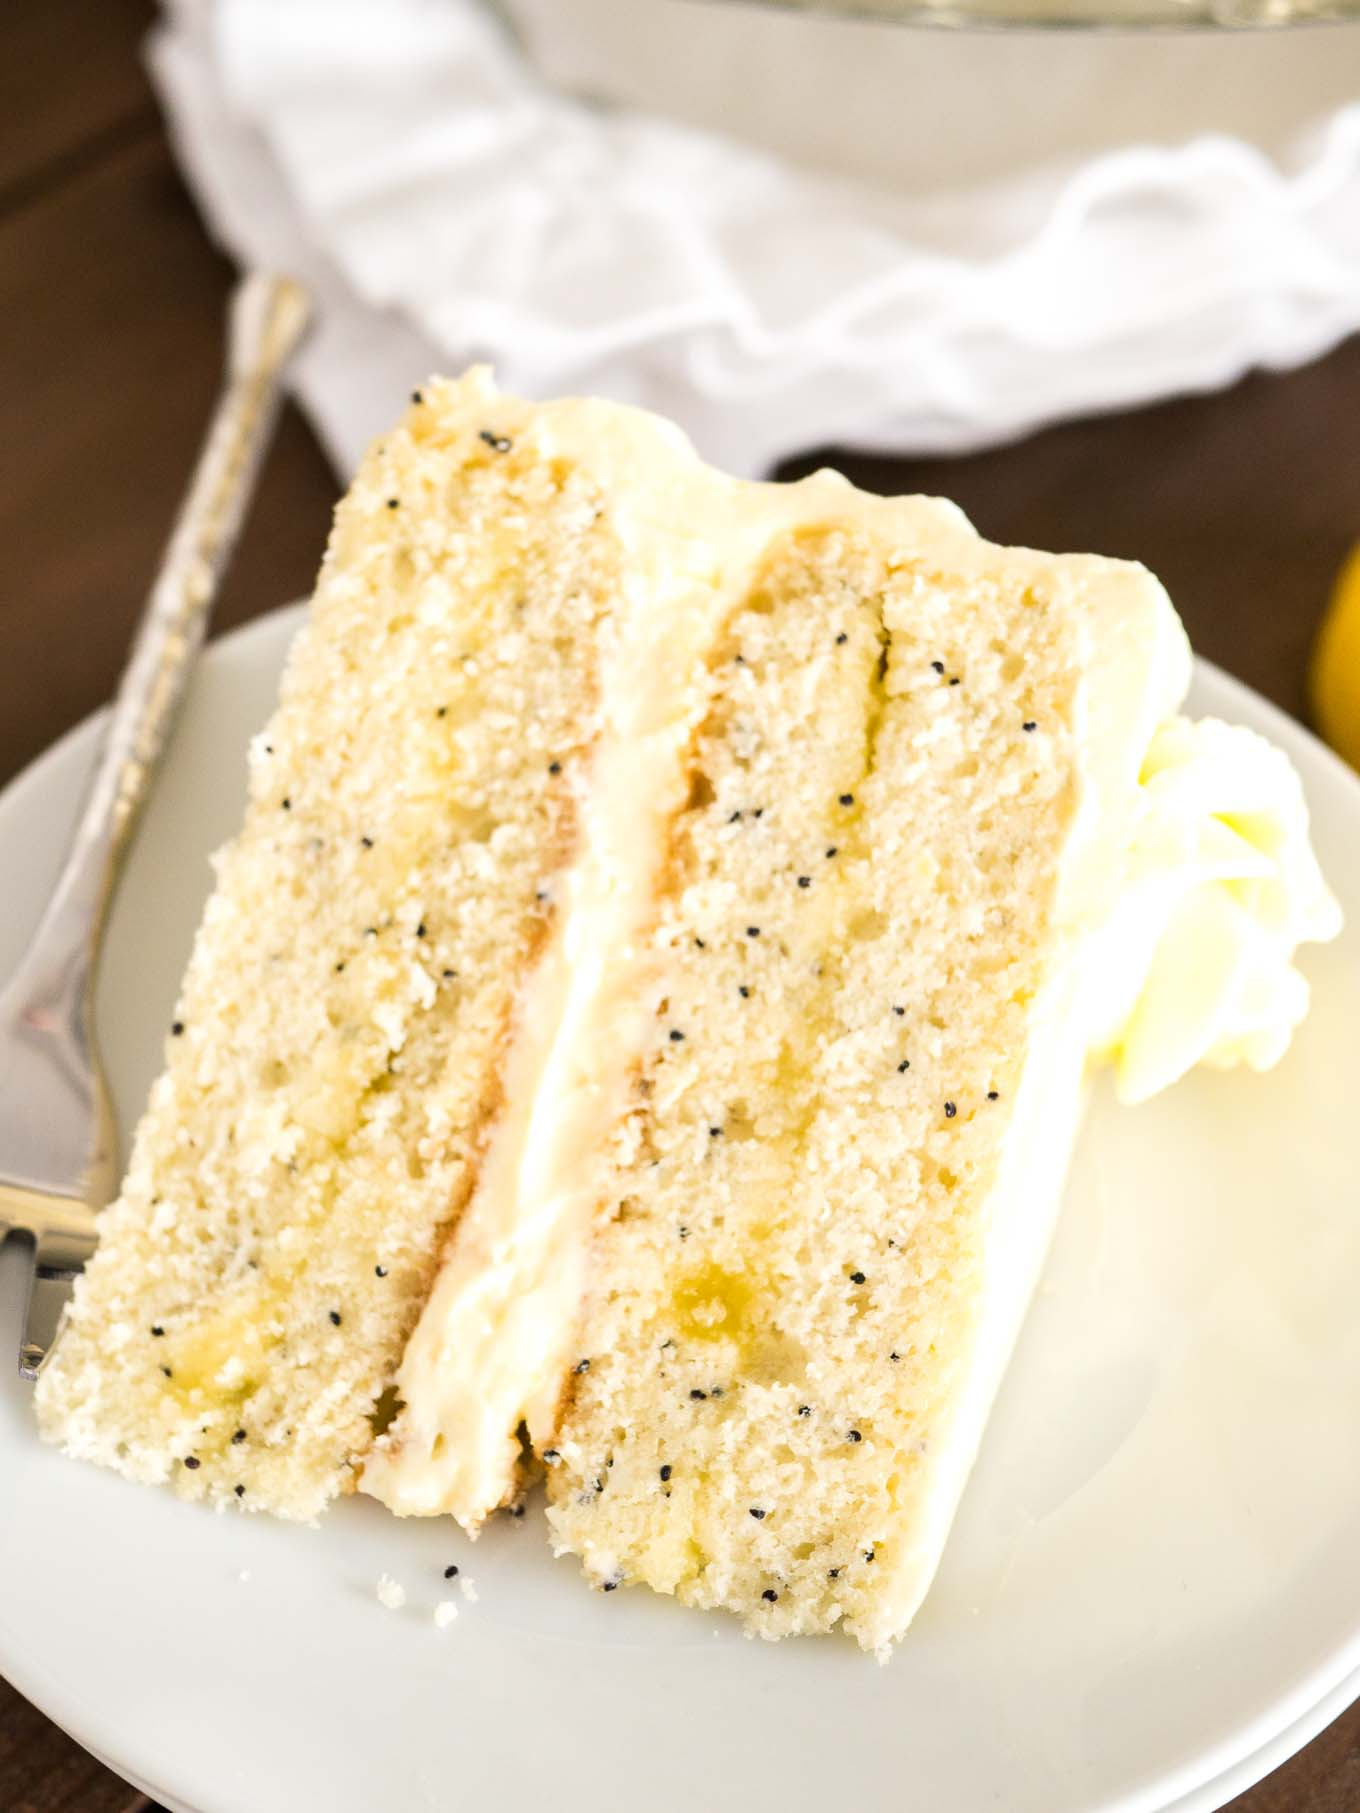 Poppy seed bread recipe yellow cake mix